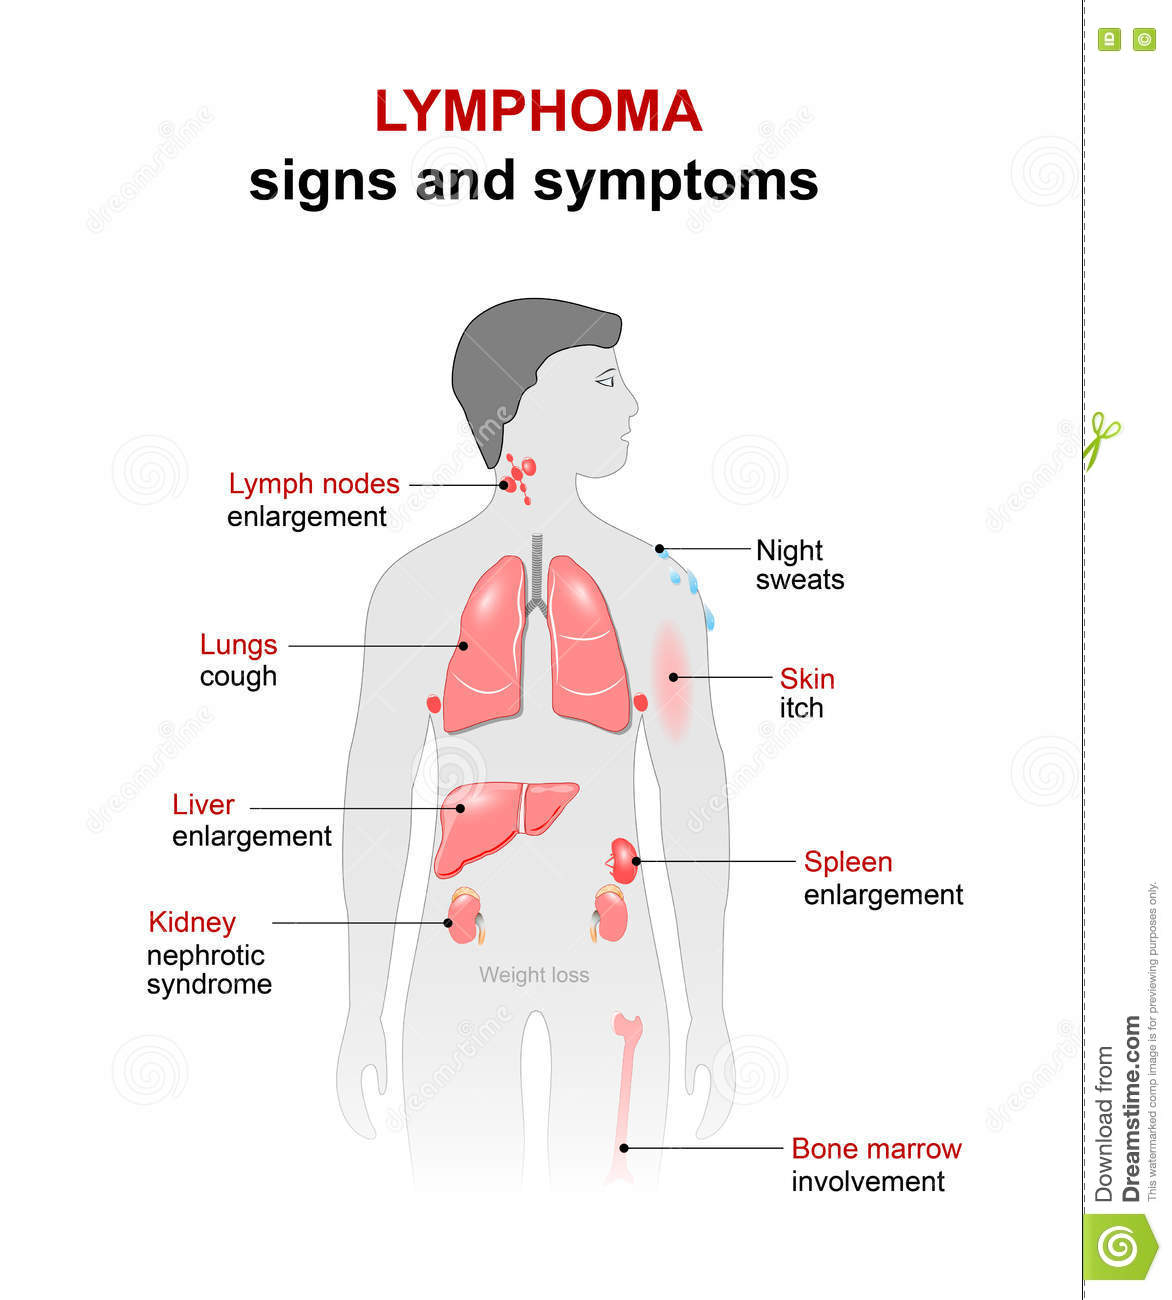 lymphoma signs and symptoms stock vector illustration of